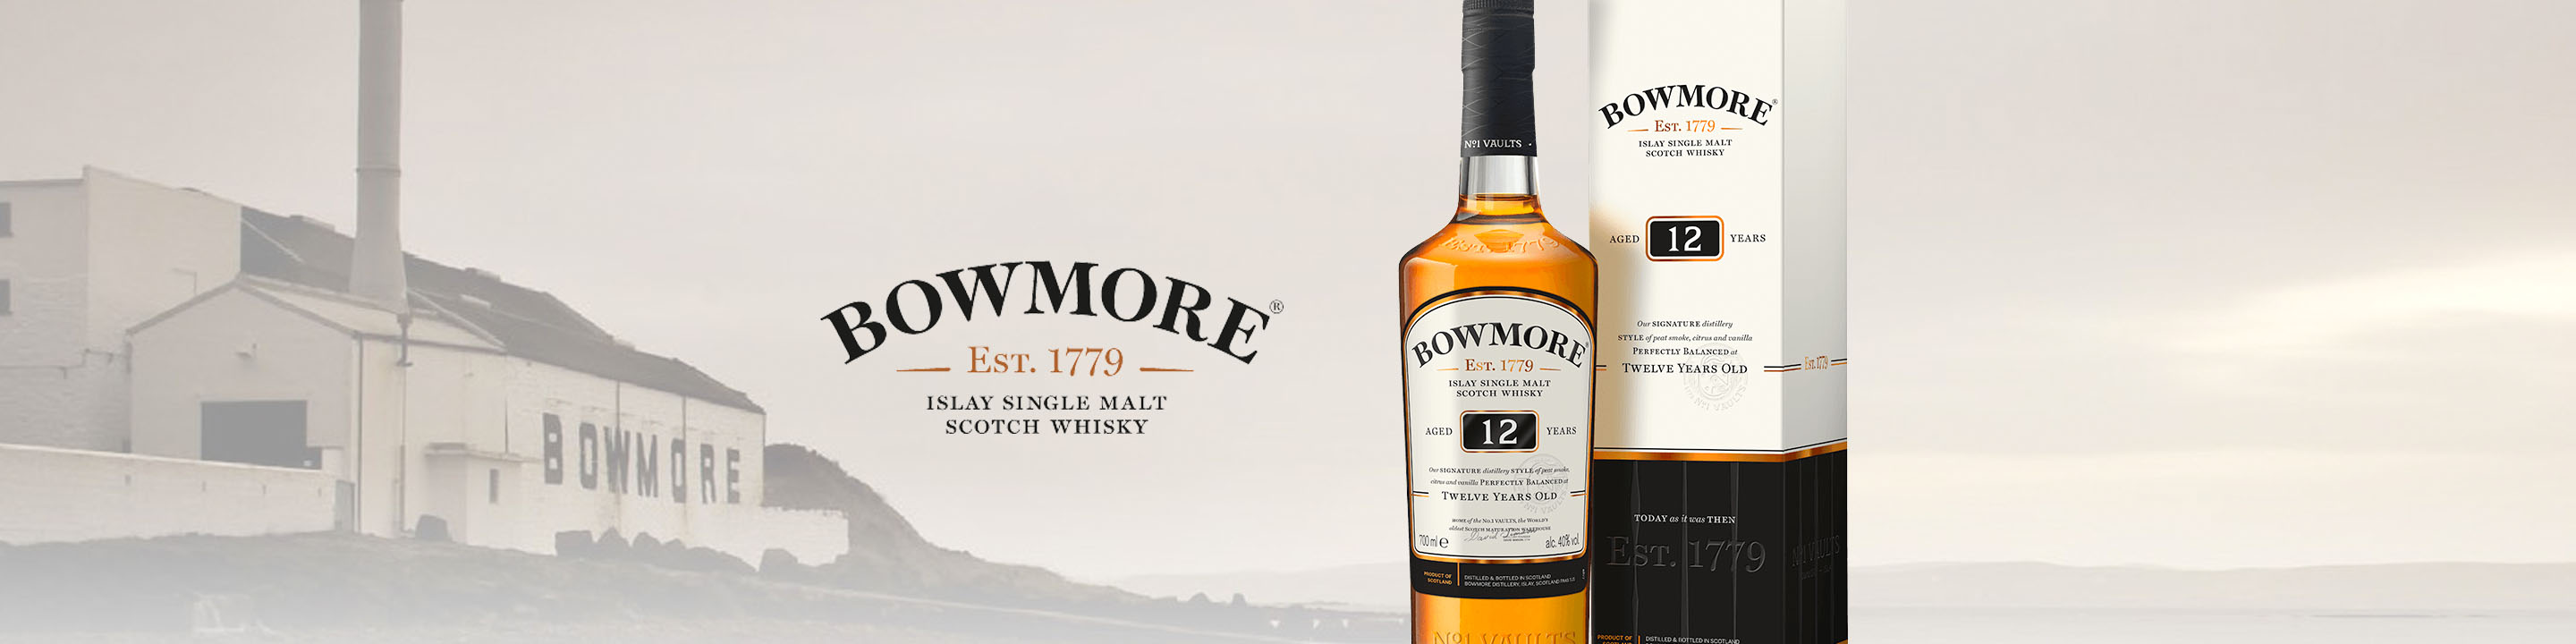 Founded in Islay in 1779, Bowmore is the home of the world's oldest Scotch Maturation Warehouse, The Legendary No.1 Vaults.